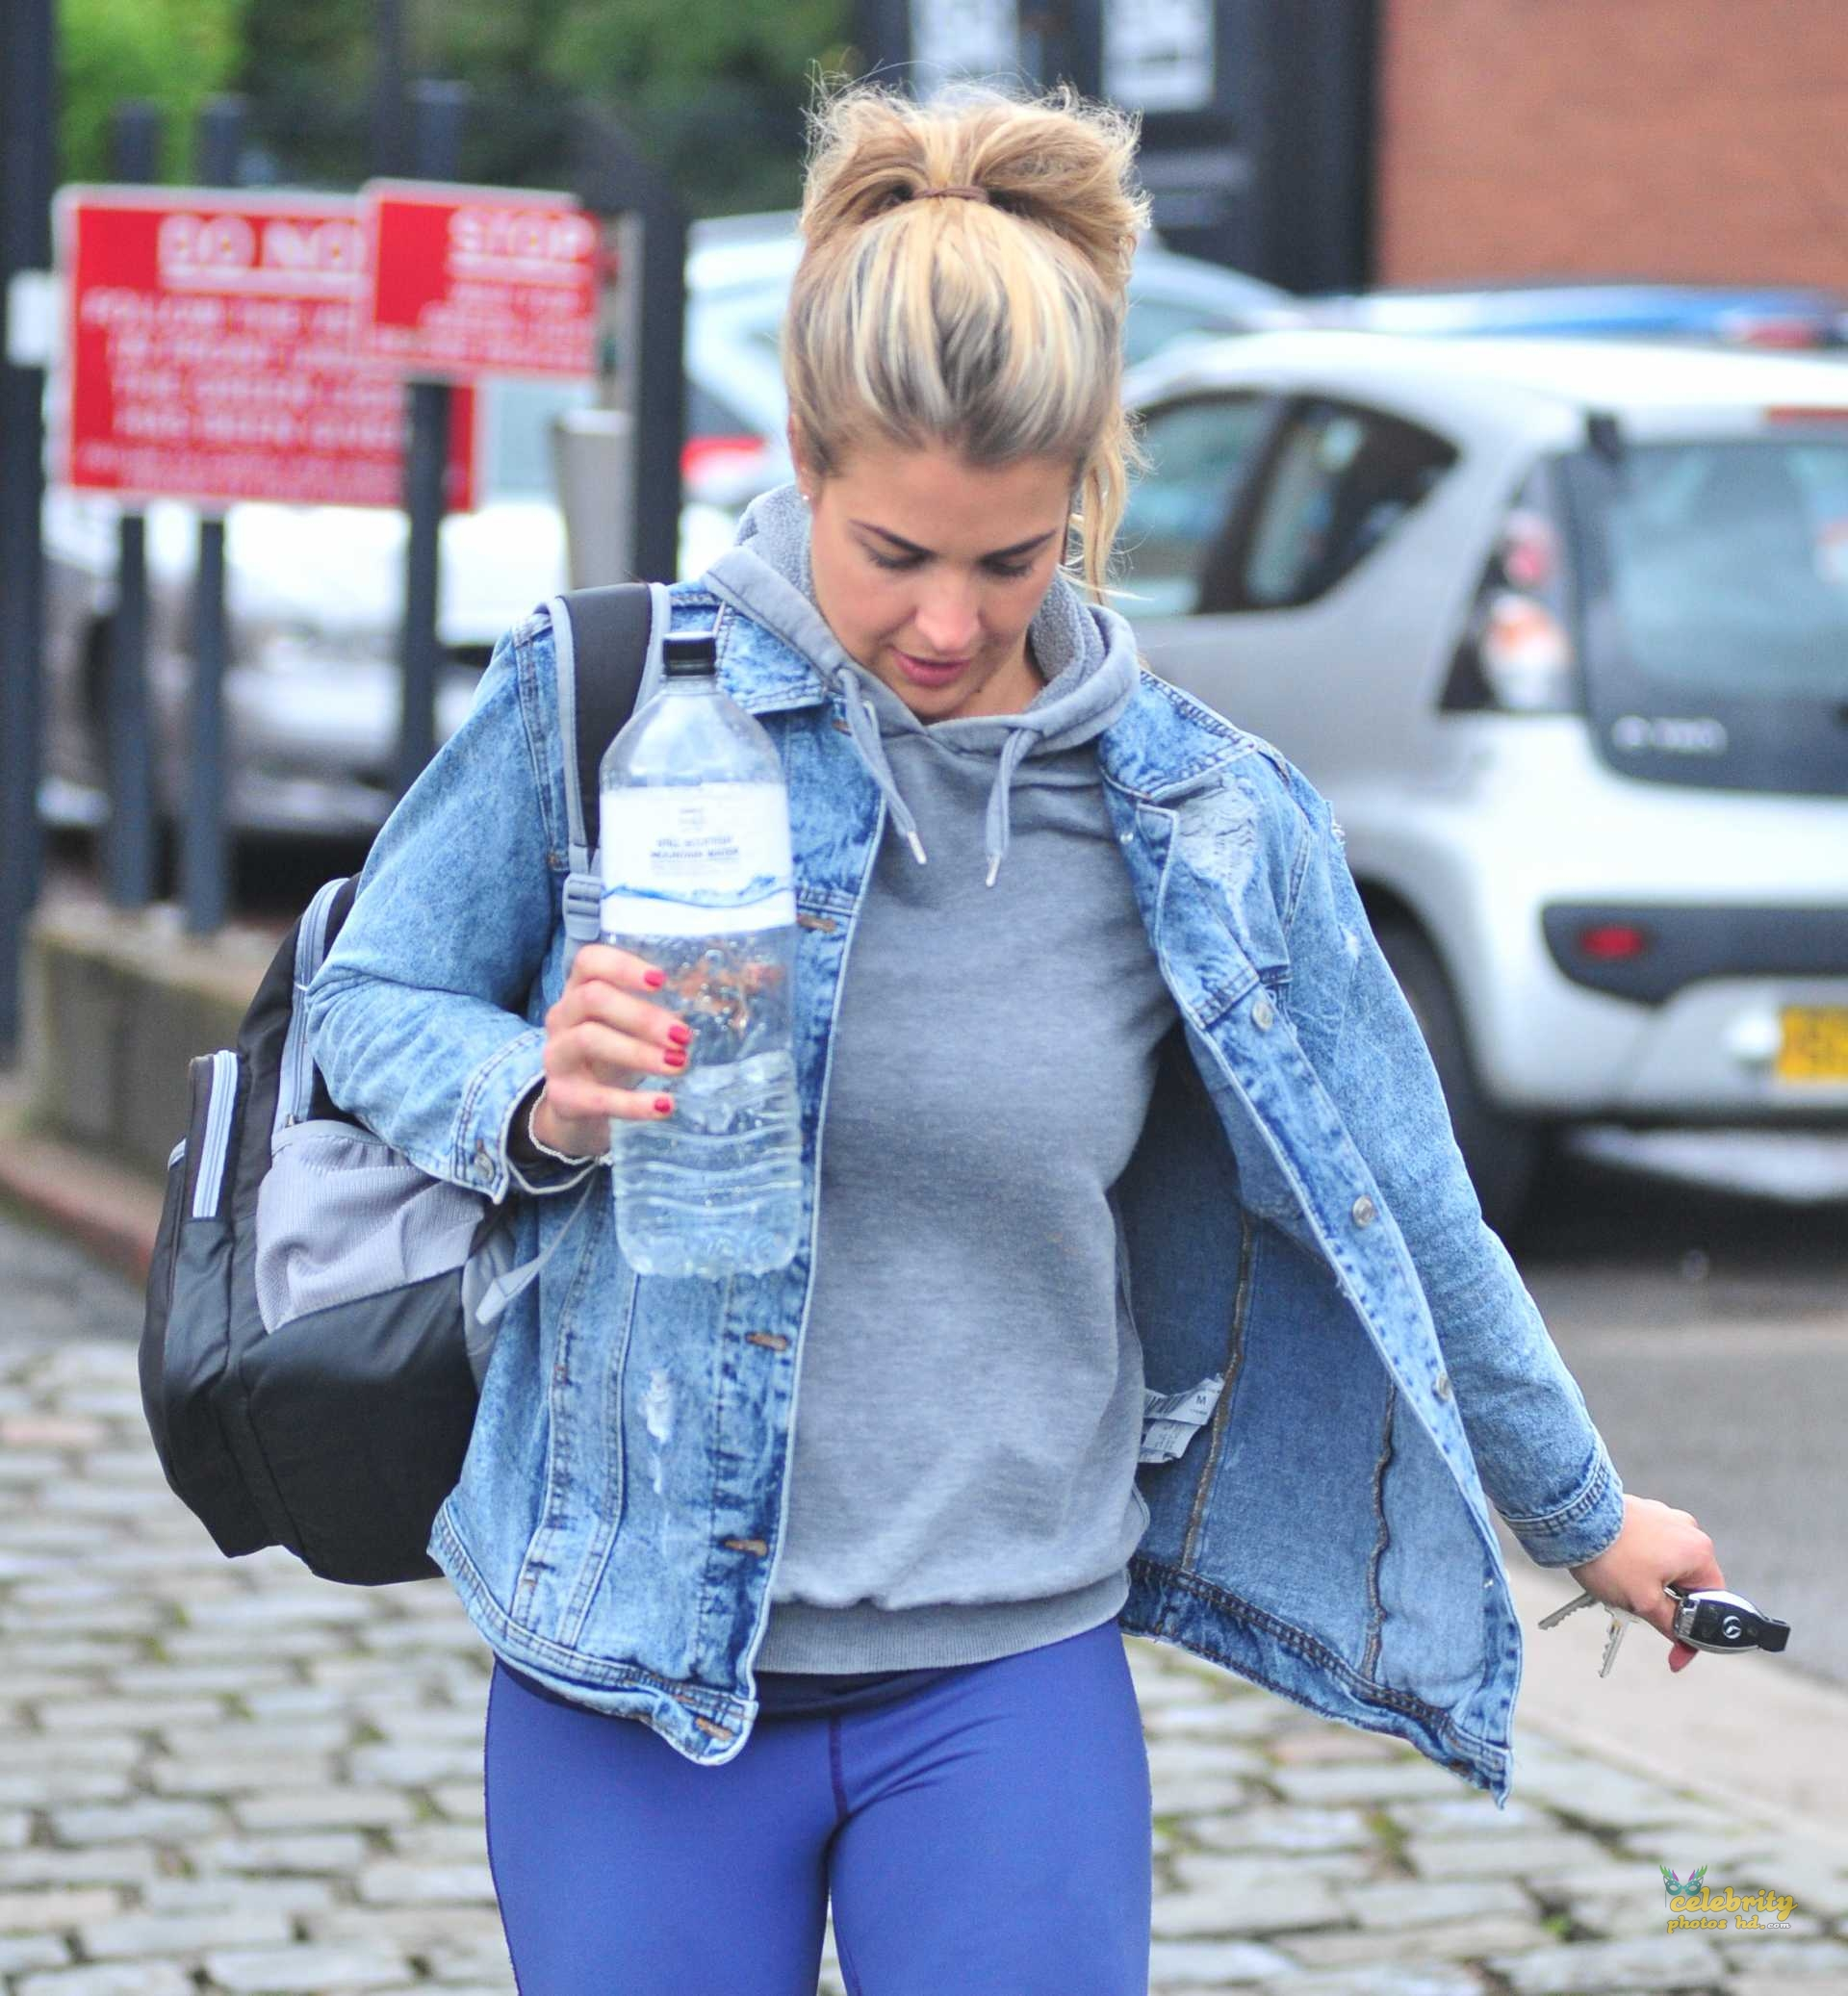 Gemma Atkinson Booty, Ariving at 'Strictly Come Dancing' Rehearsals (4)